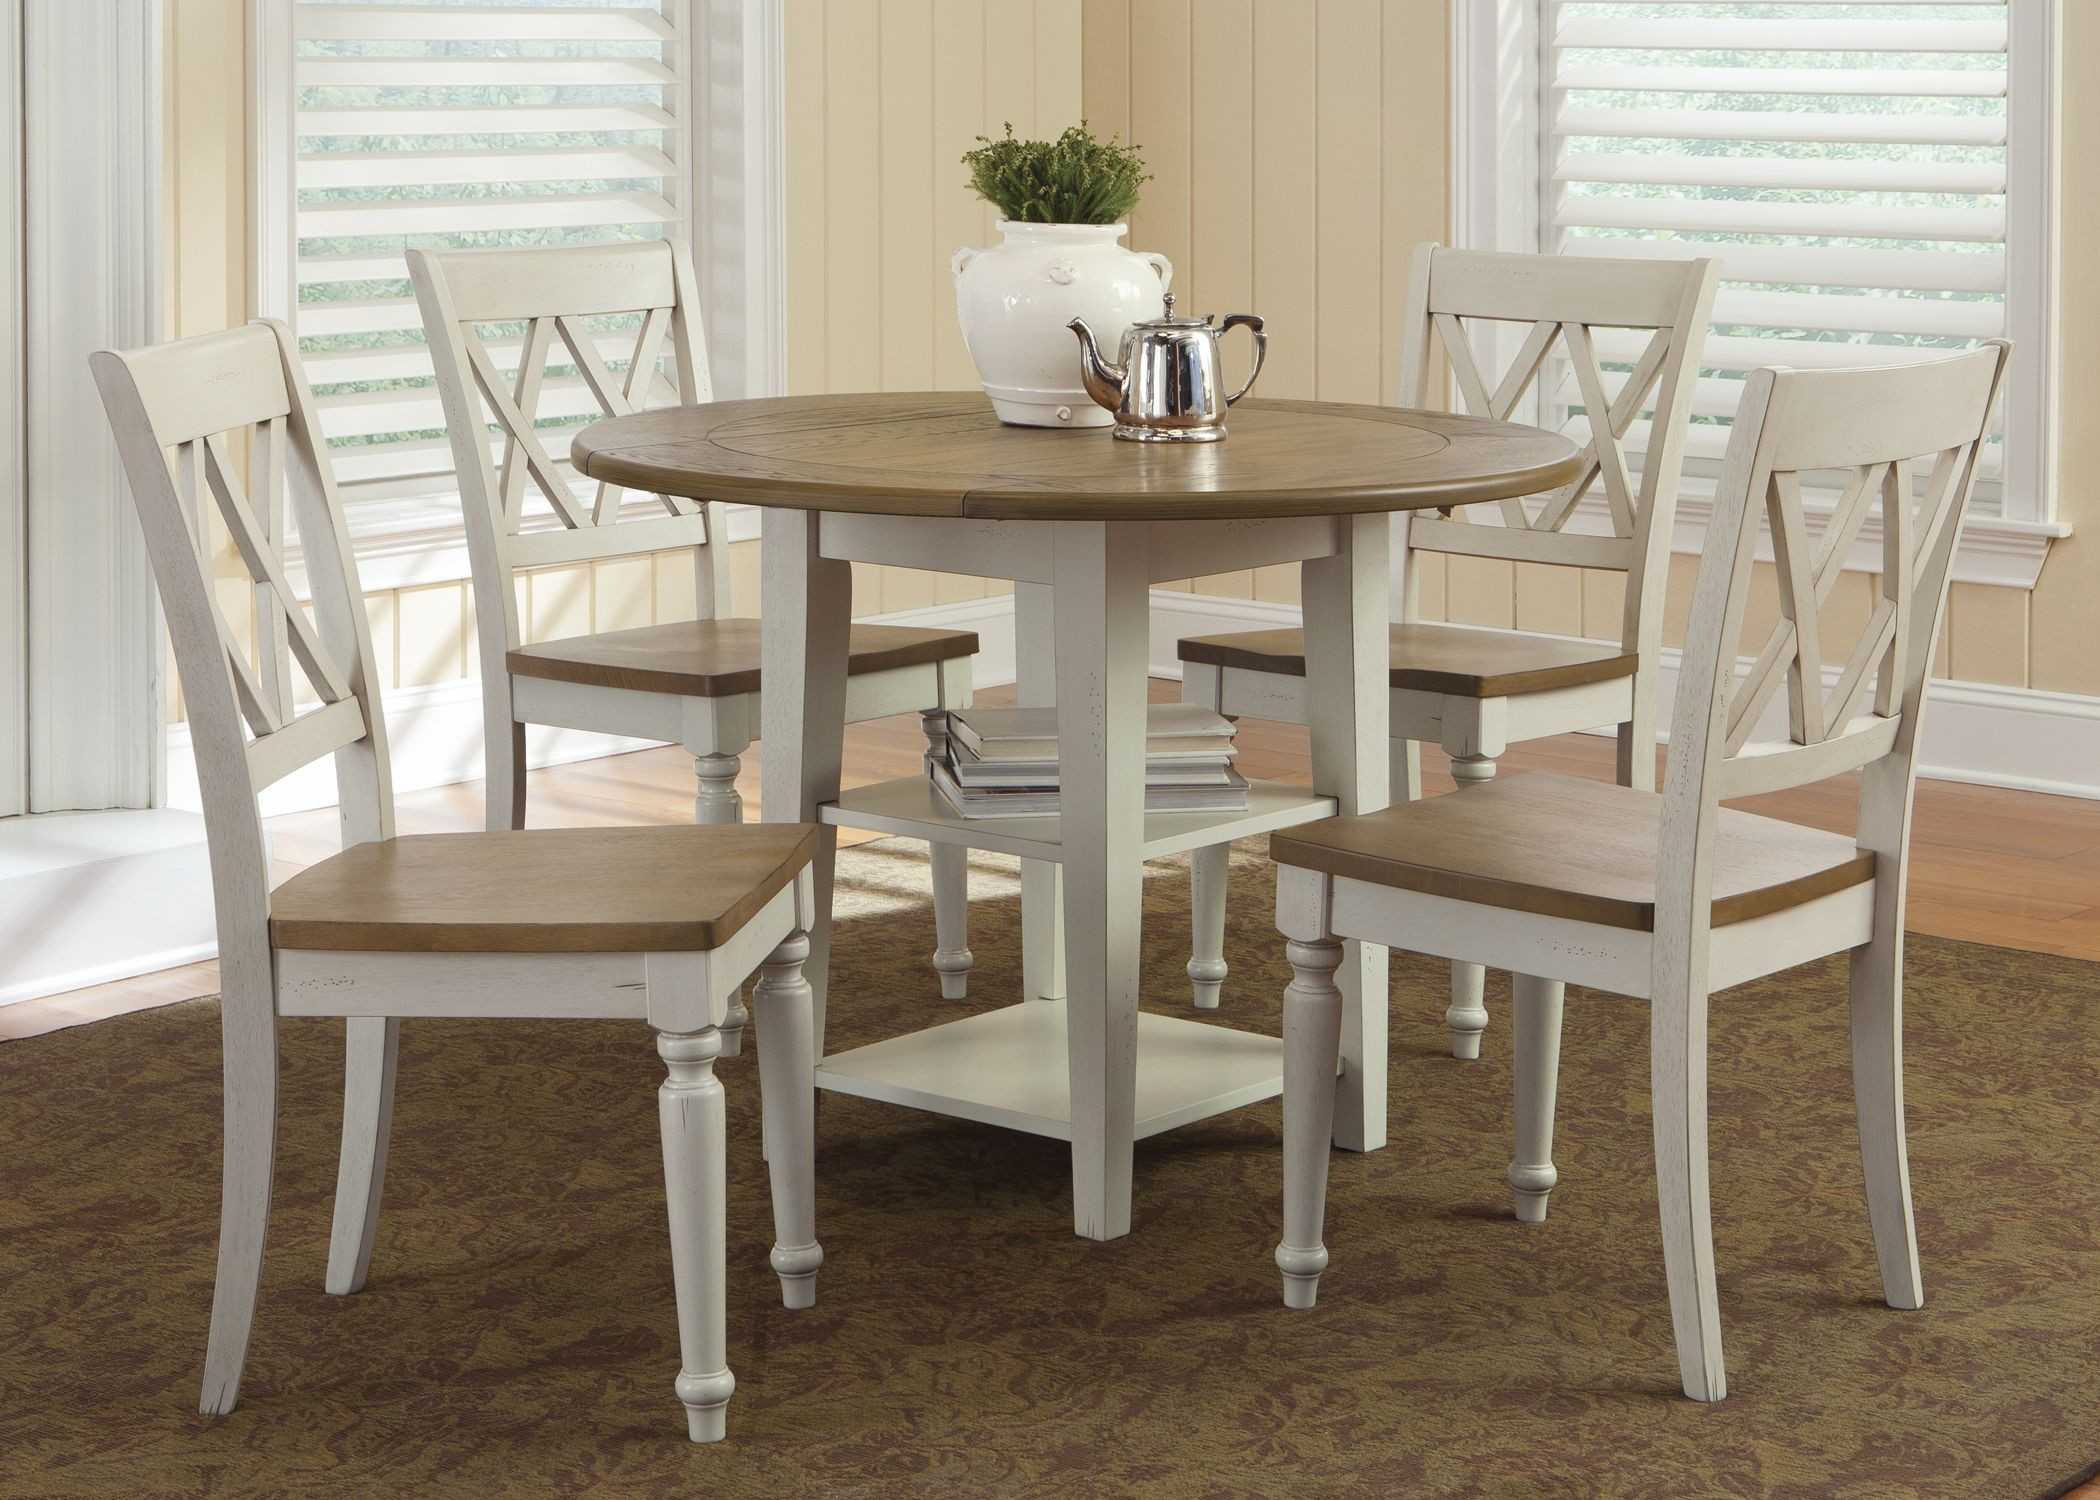 Al Fresco Al Fresco Iii Drop Leaf Dining Room Set From Liberty 841